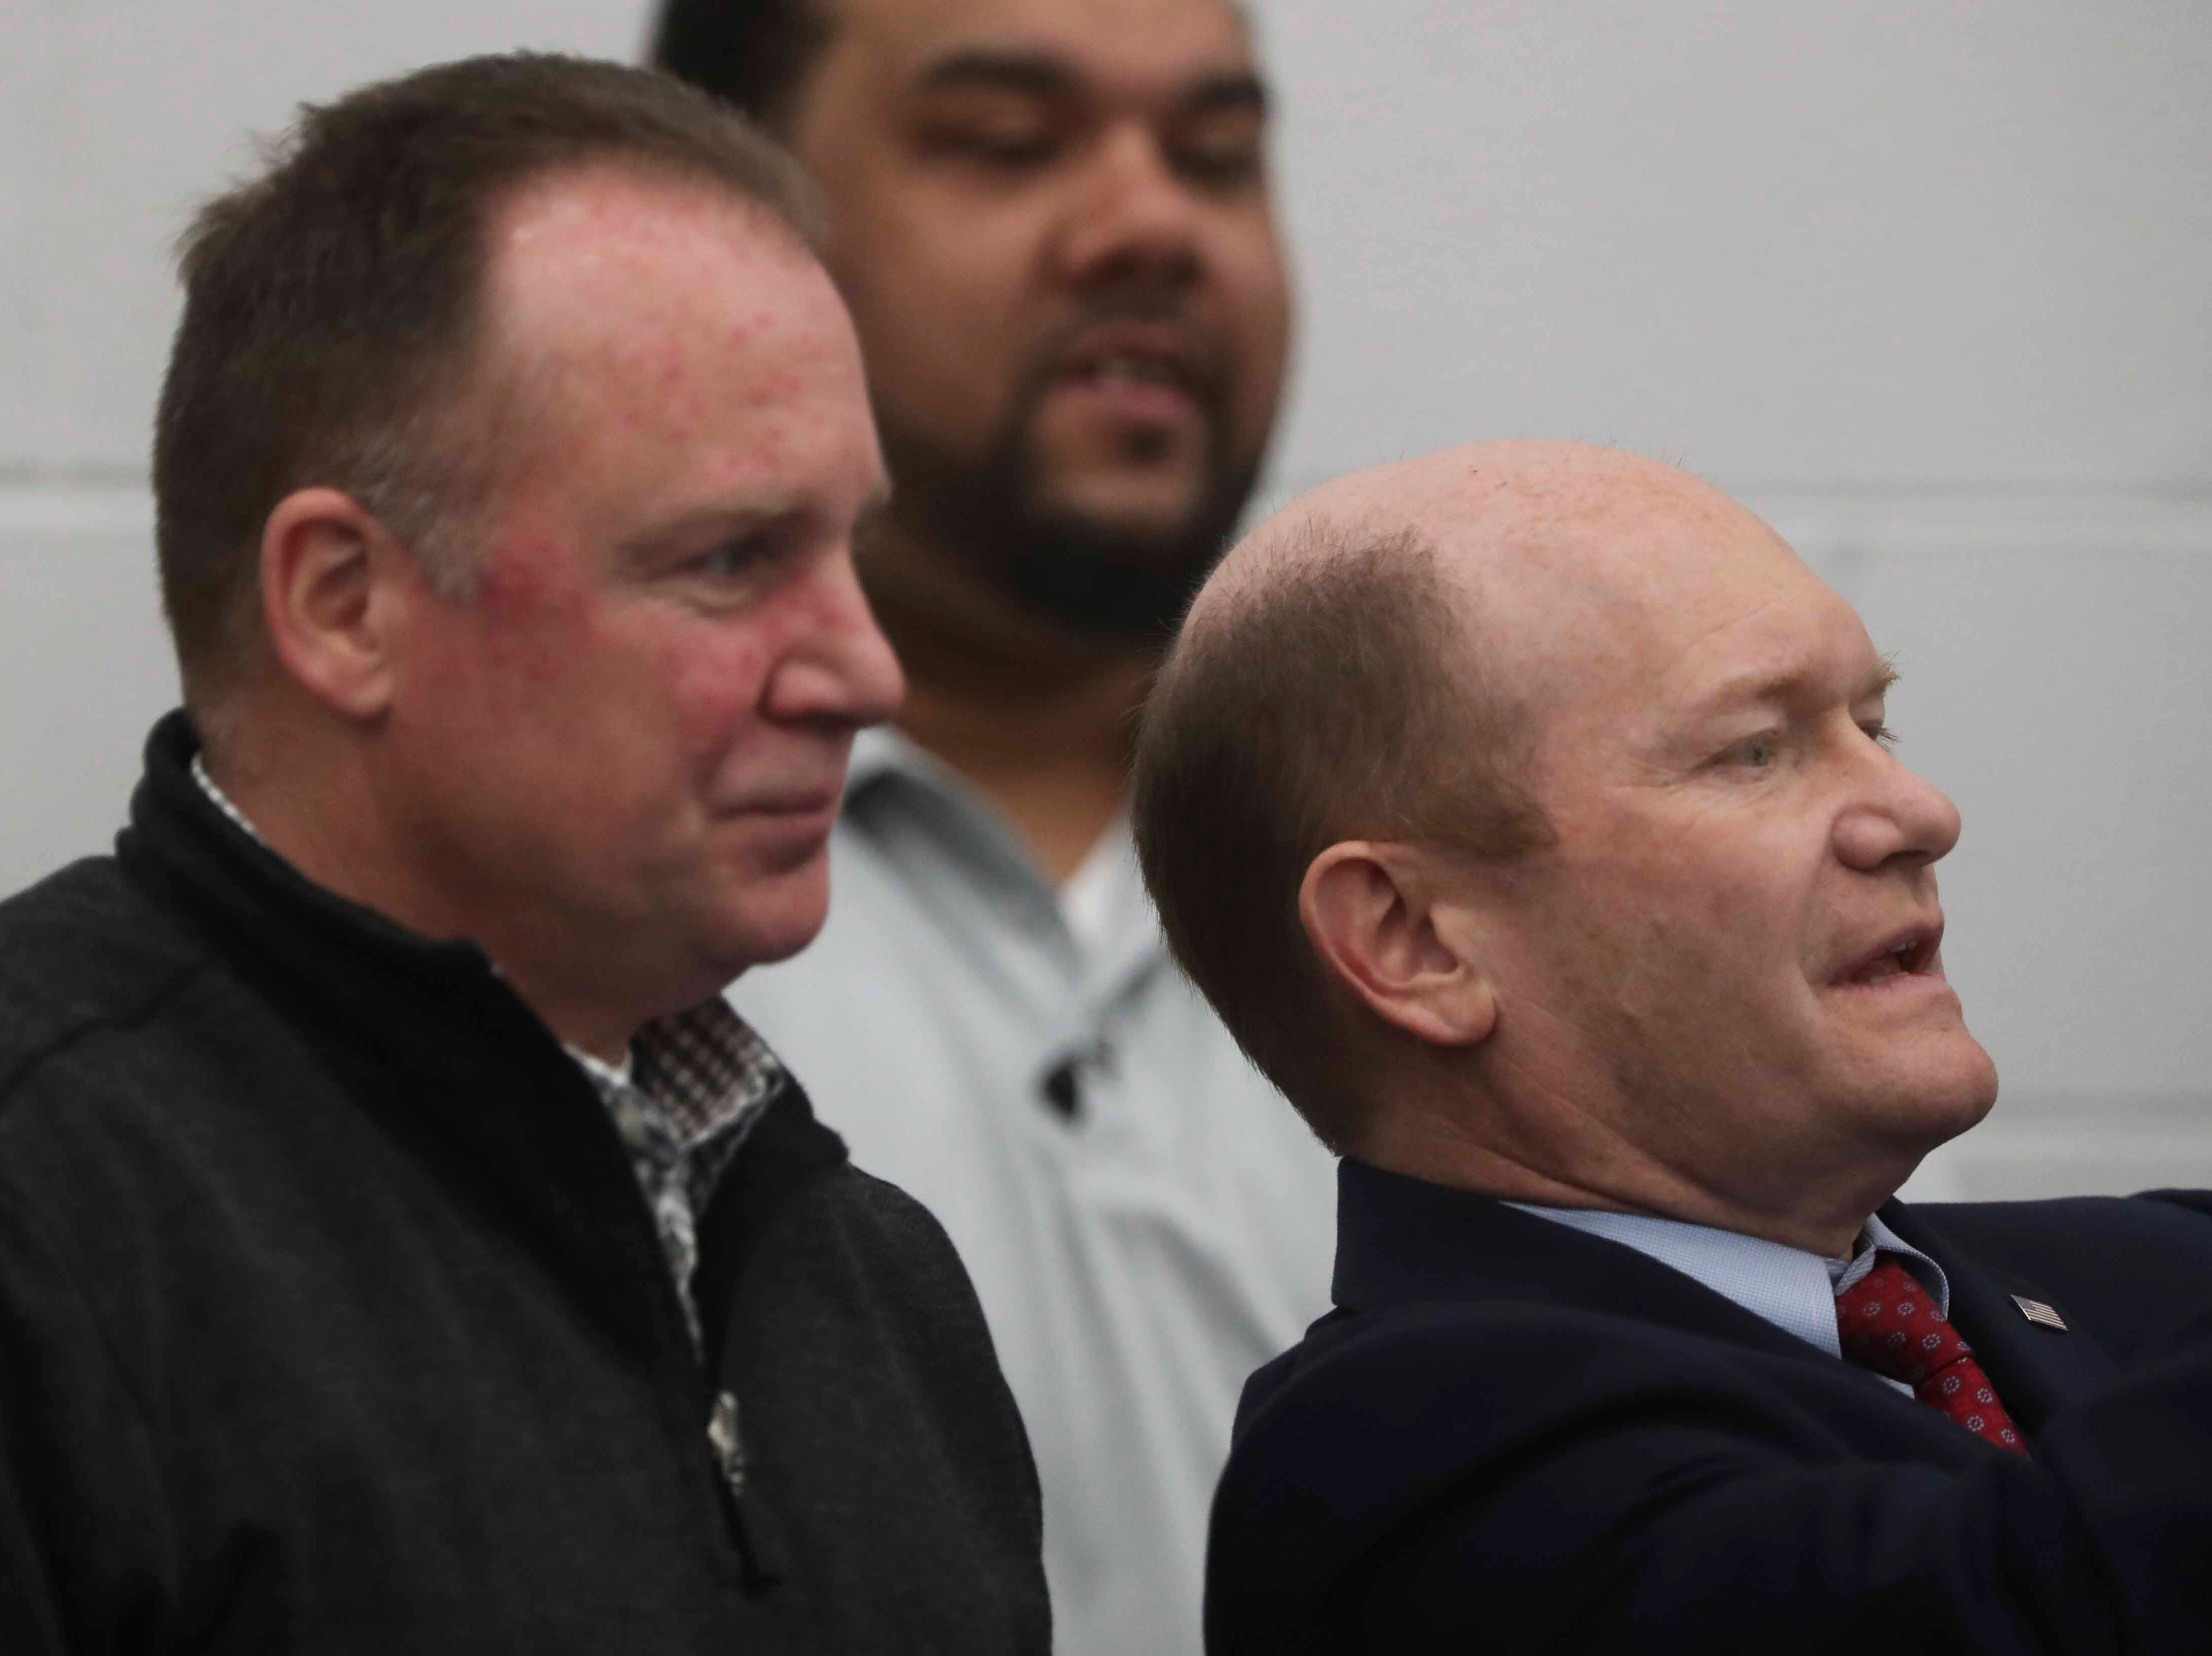 Wilmington police chief Robert Tracy (left) chats with US Senator Chris Coons courtside as Coons leans back to snap a photo as the Delaware Blue Coats of the NBA G-League open the 76ers Field House in Wilmington Wednesday. The event was the place to be for Wilmington, county and state officials and movers-and-shakers, with dozens of VIPs in the crowd from city government to the partnering private companies.